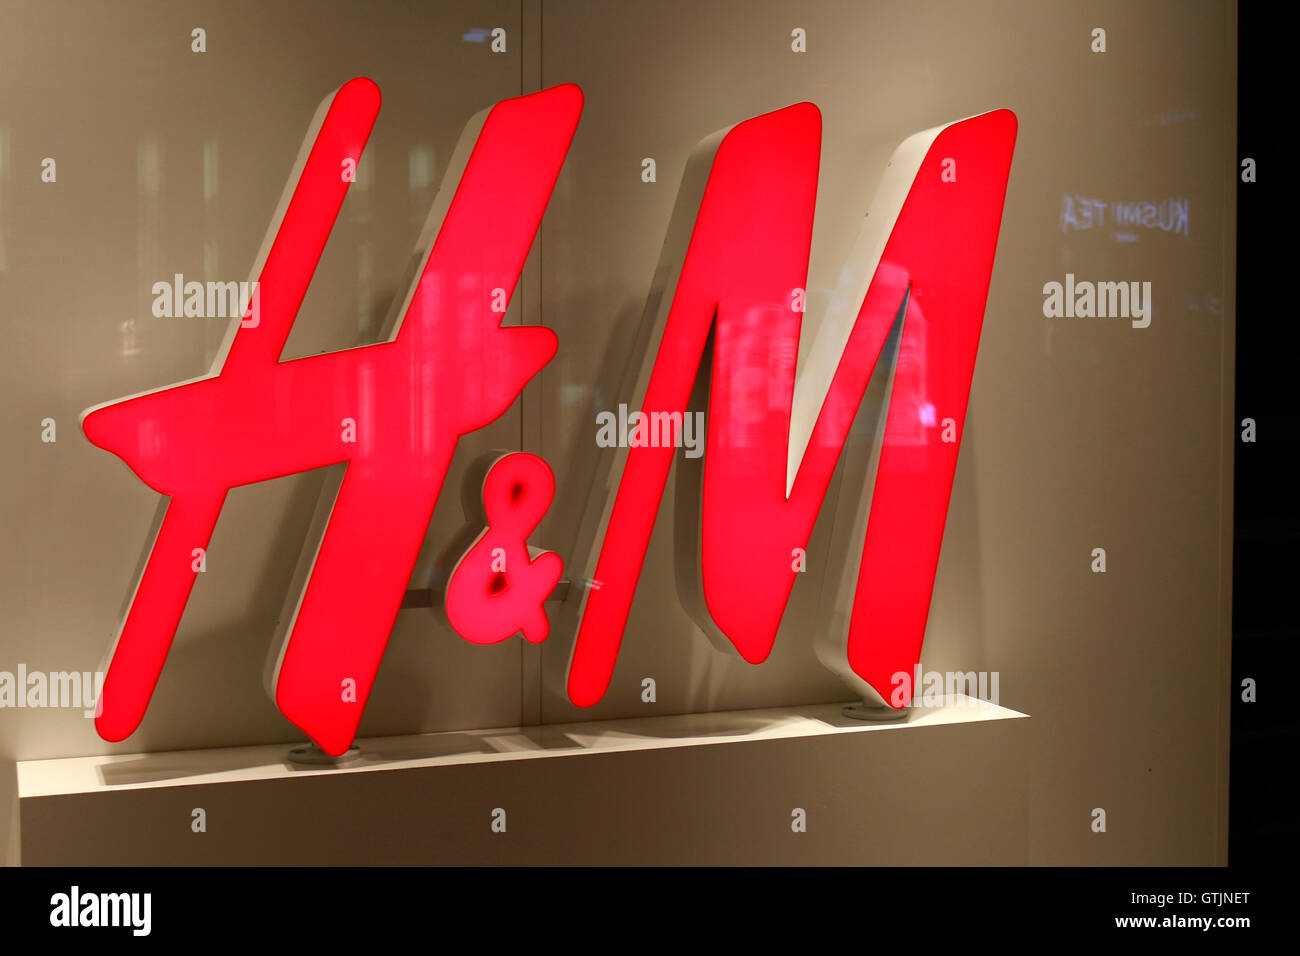 logo der marke h und m berlin stockfoto bild 118425968 alamy. Black Bedroom Furniture Sets. Home Design Ideas